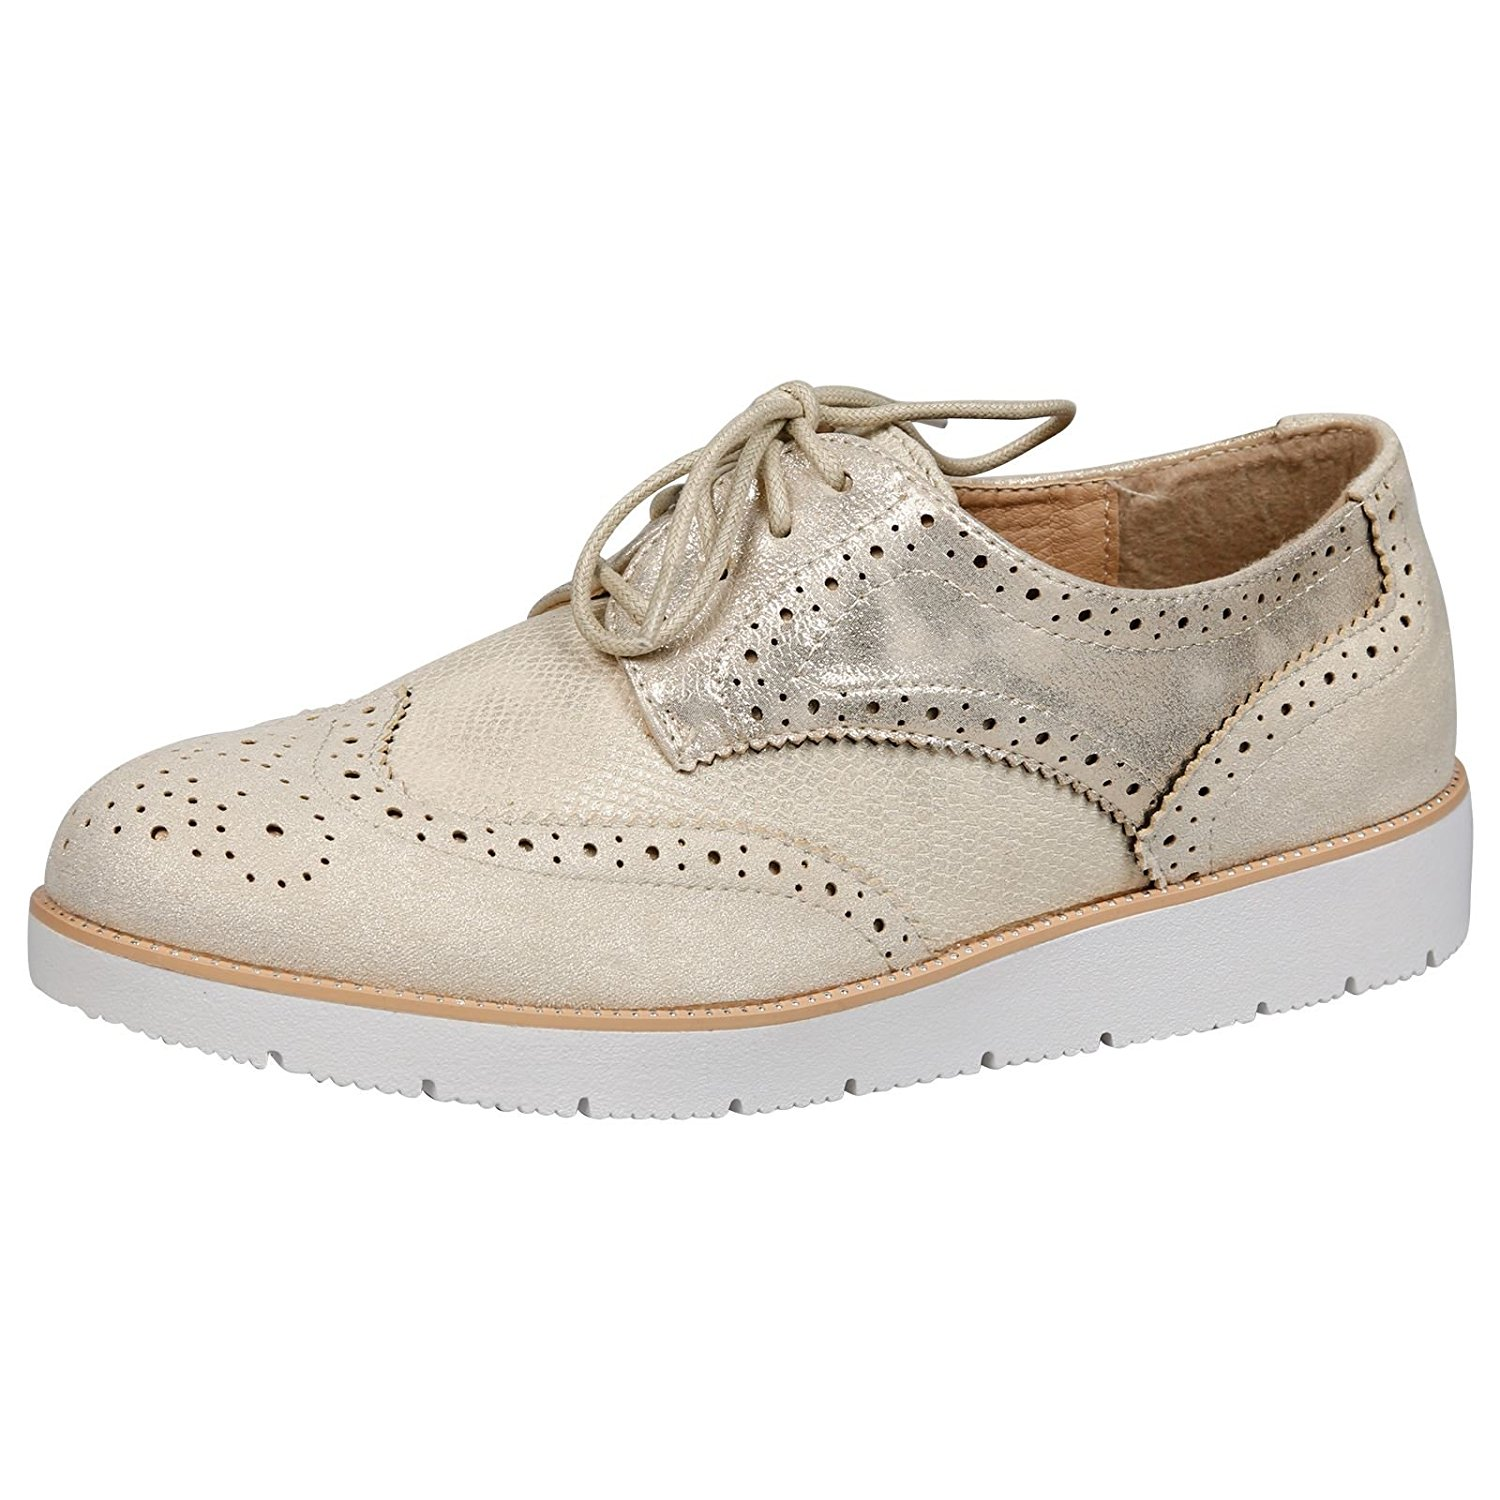 55b5c60e98 Get Quotations · Feet First Fashion Dina Womens Low Heels Lace Up Brogues  Ladies Shoes Oxford Pumps Size New